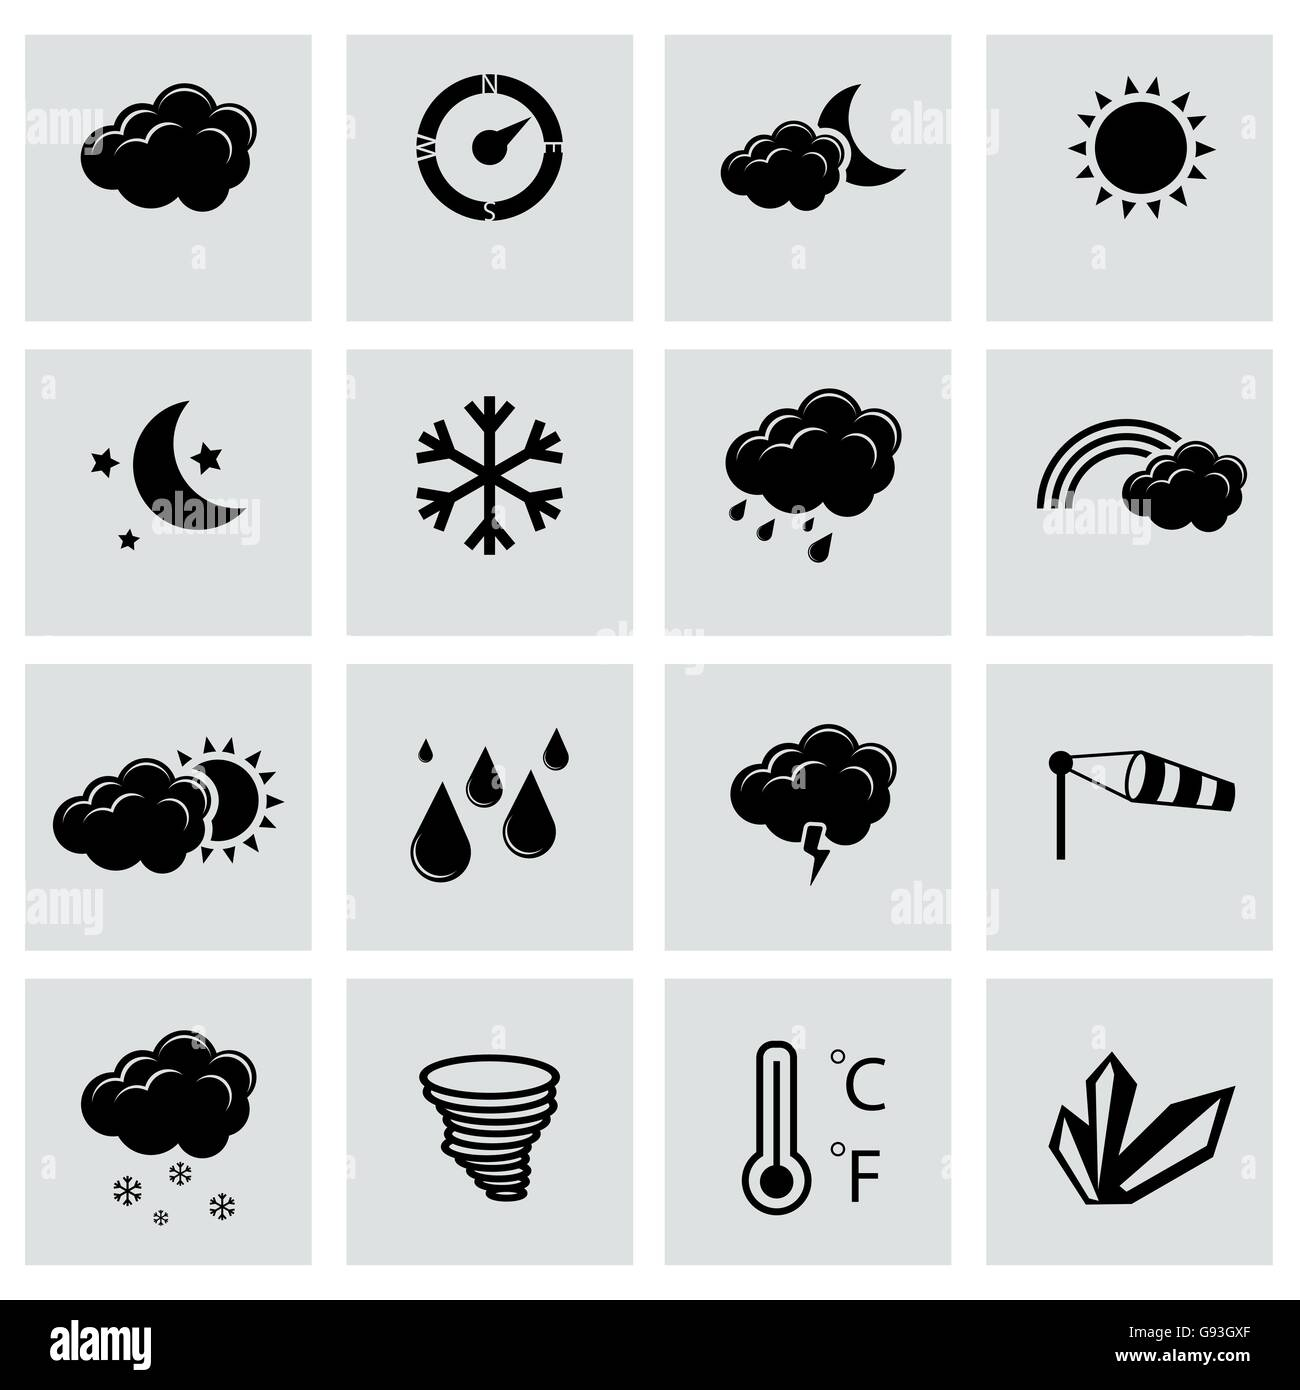 Vector black weather icons set - Stock Image